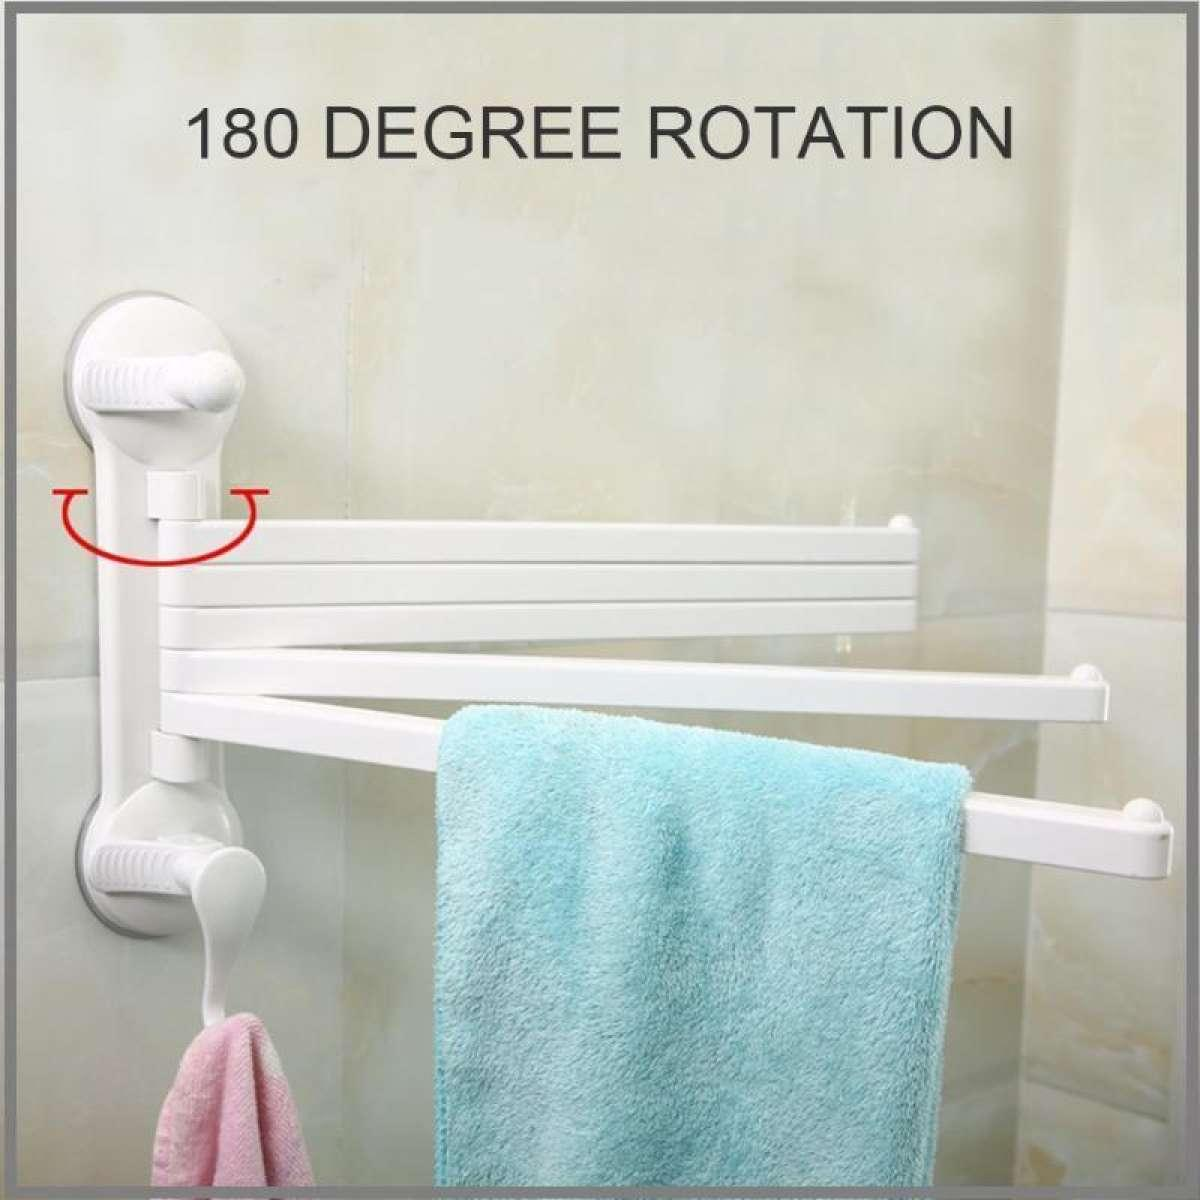 Super Bathroom Towel Bar With Hook 180 Degree Rotation 5 Layer With 1 Hook Towel Rack Holder Wall Mounted Bathroom Accessories Download Free Architecture Designs Rallybritishbridgeorg